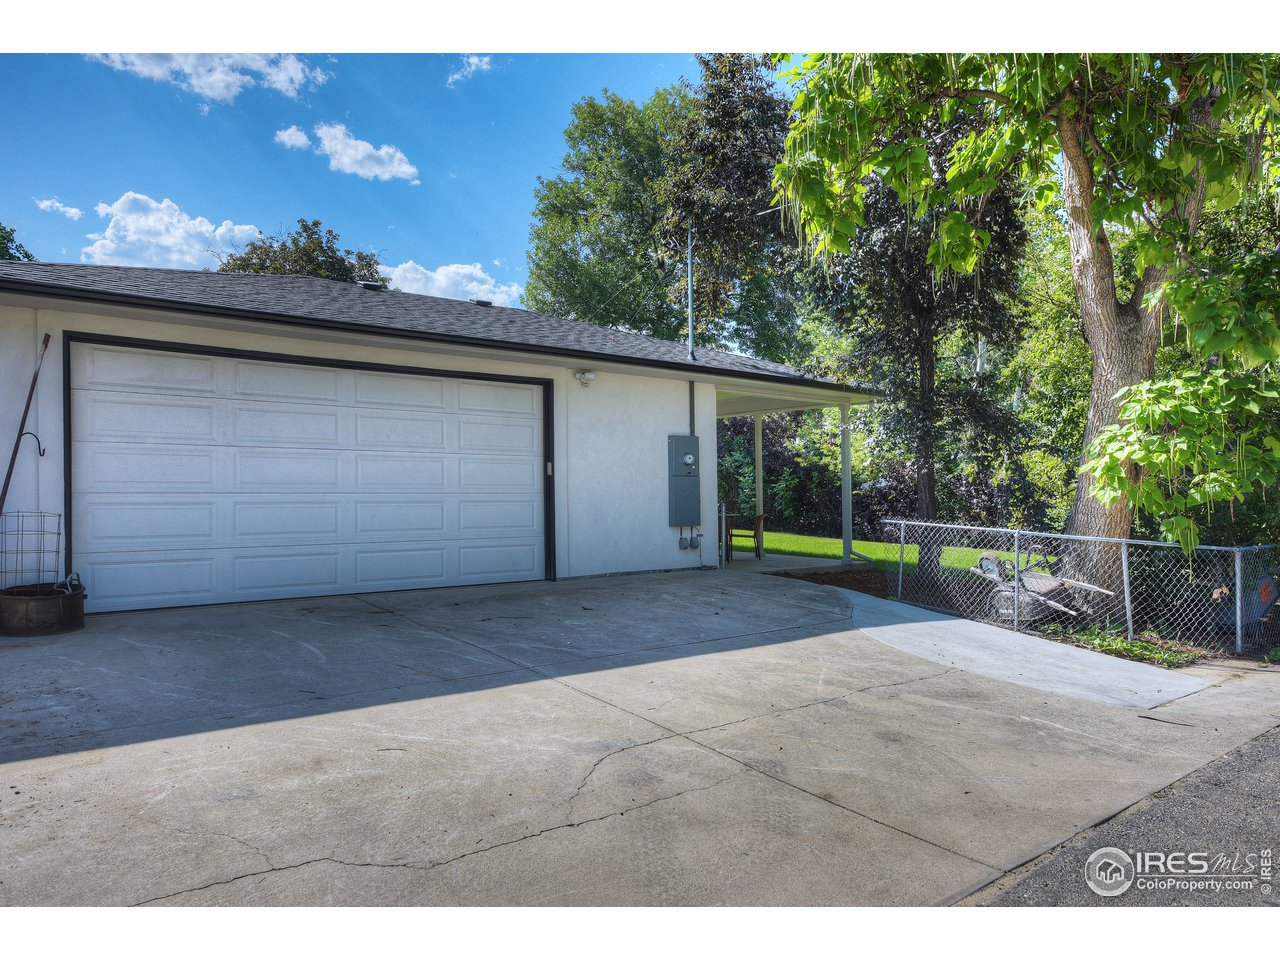 720 sqft garage with room for 3 cars